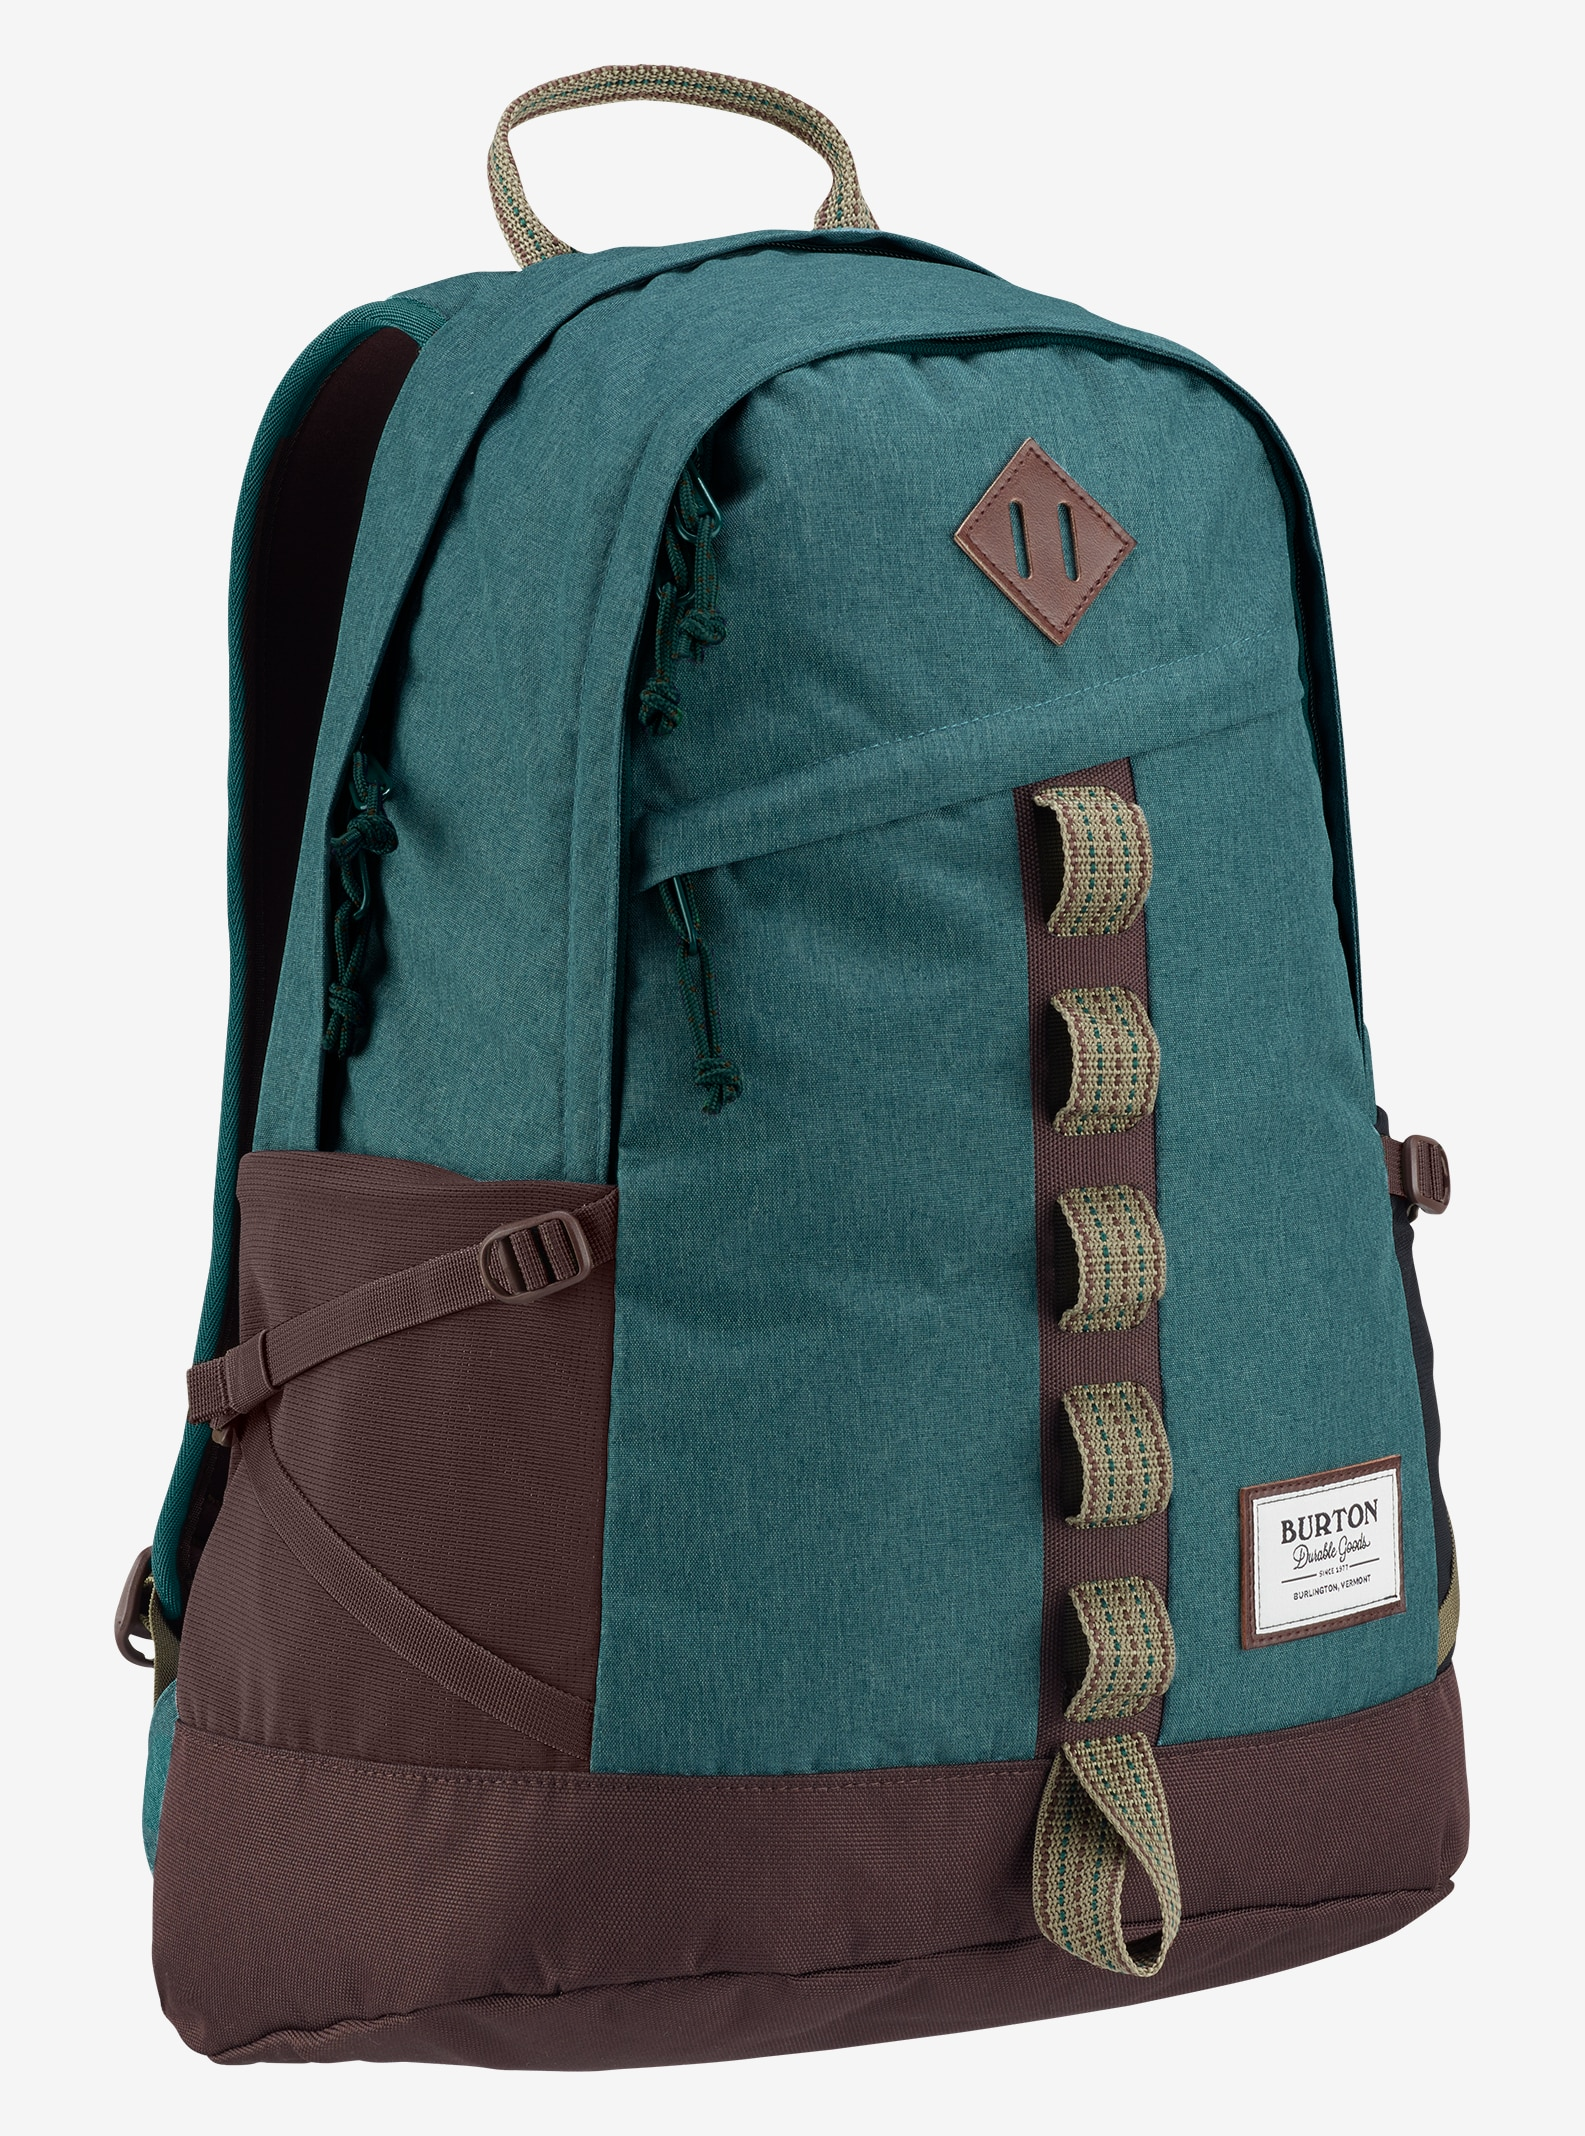 Burton Shackford Backpack shown in Jasper Heather